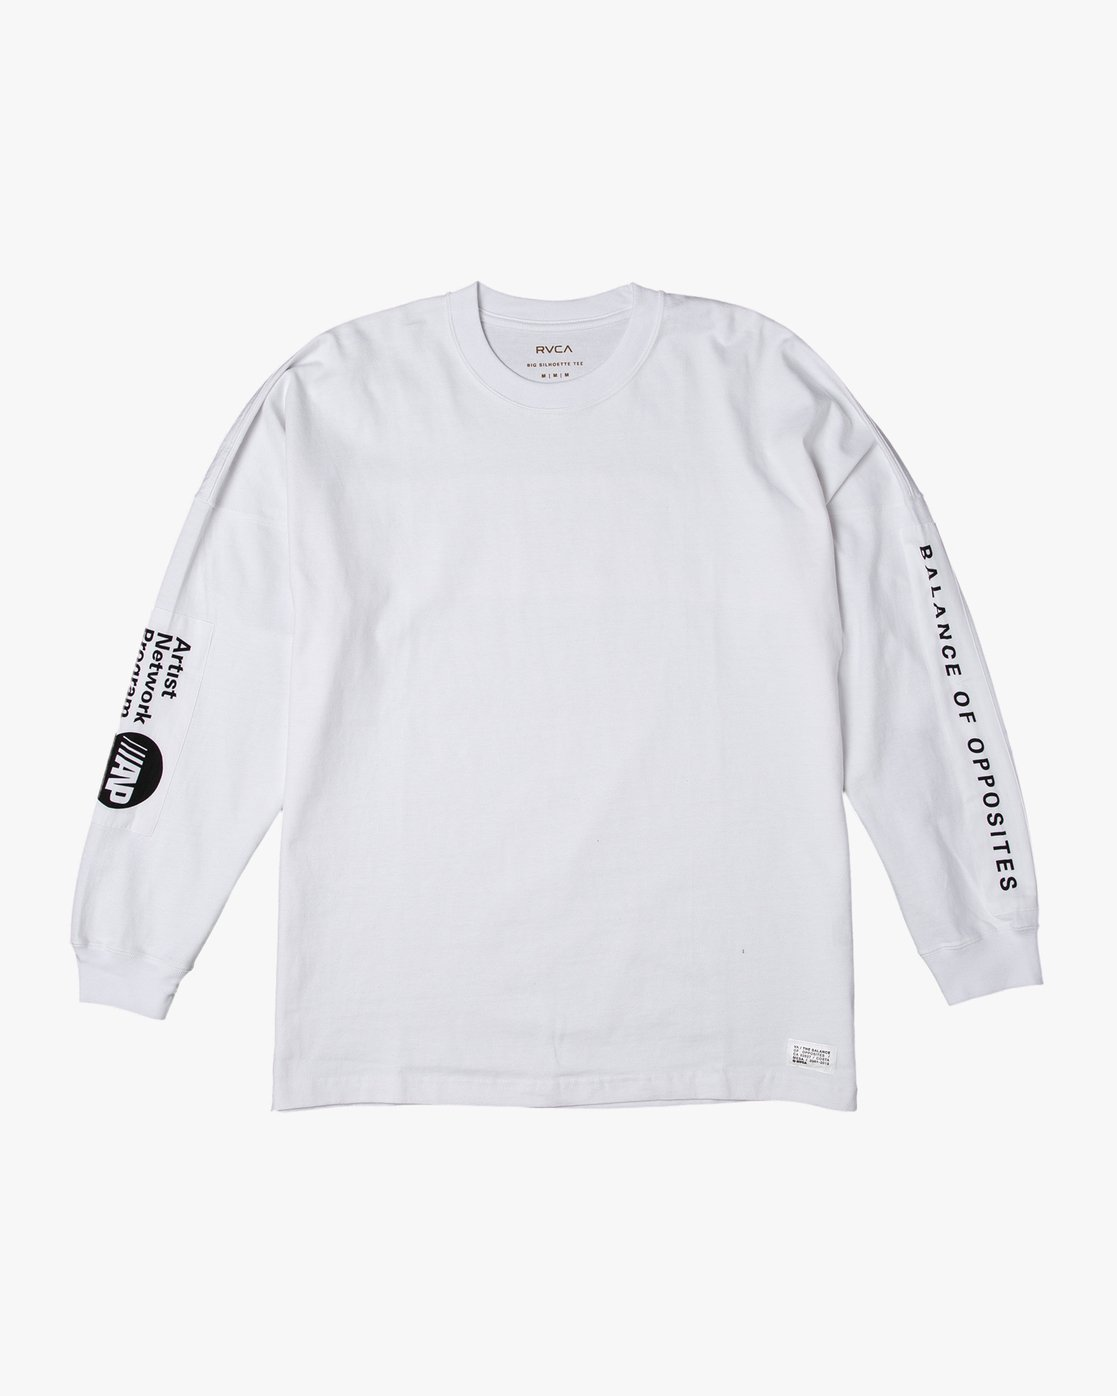 0 PATCH RVCA LS TEE White M906VRPR RVCA